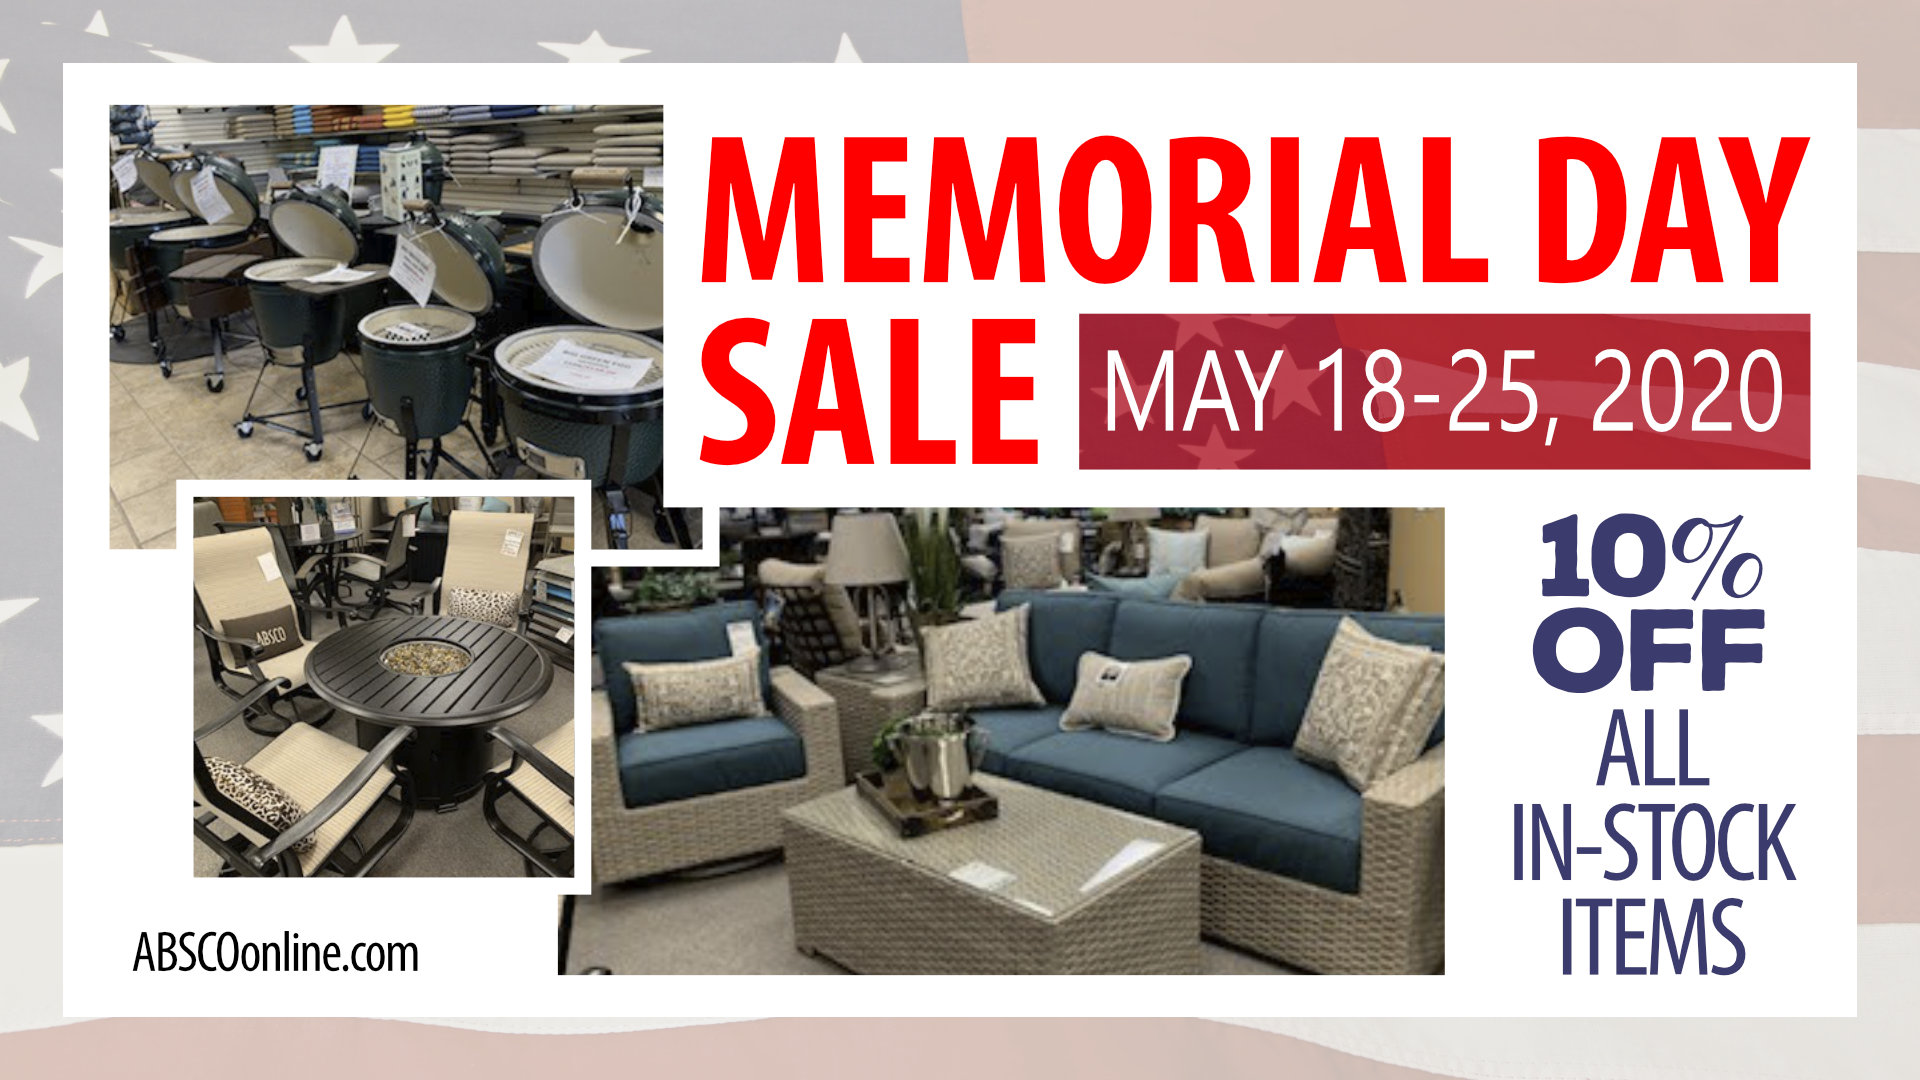 Memorial Day Sale at ABSCO